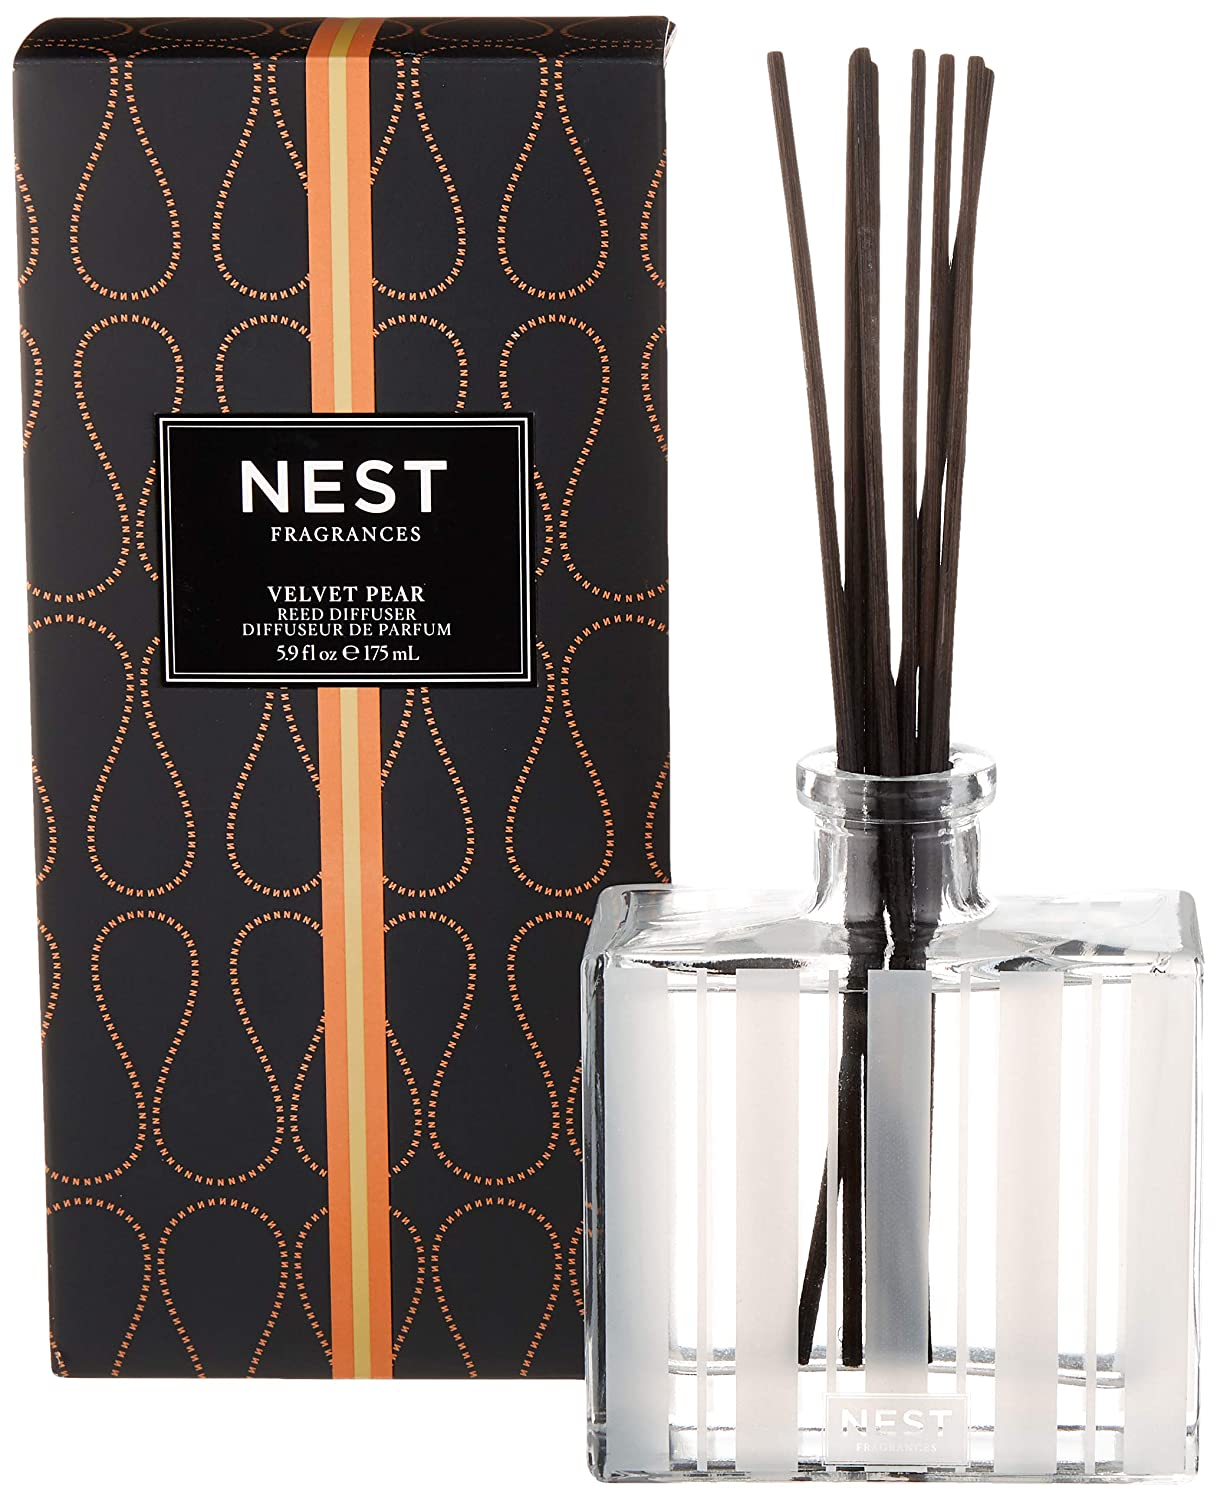 NEST Fragrances Velvet Pear Reed Diffuser 5.9 fl oz./175 mL